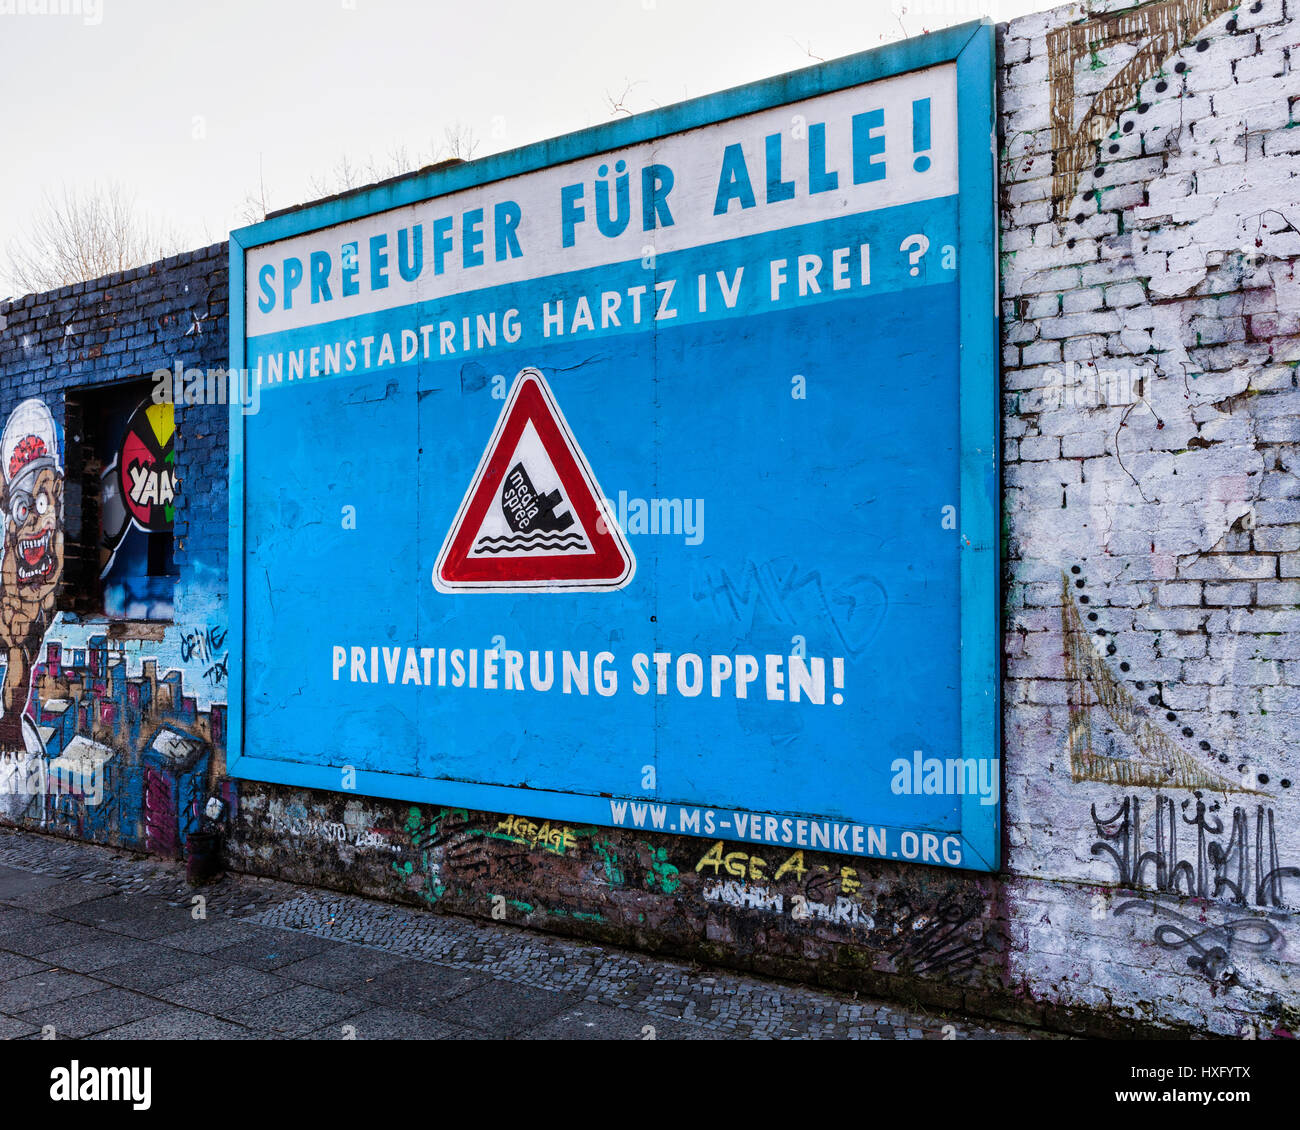 Berlin,Friederichshain. Wall sign objecting to development and gentrification of the Spree riverside. Anti-gentrification - Stock Image